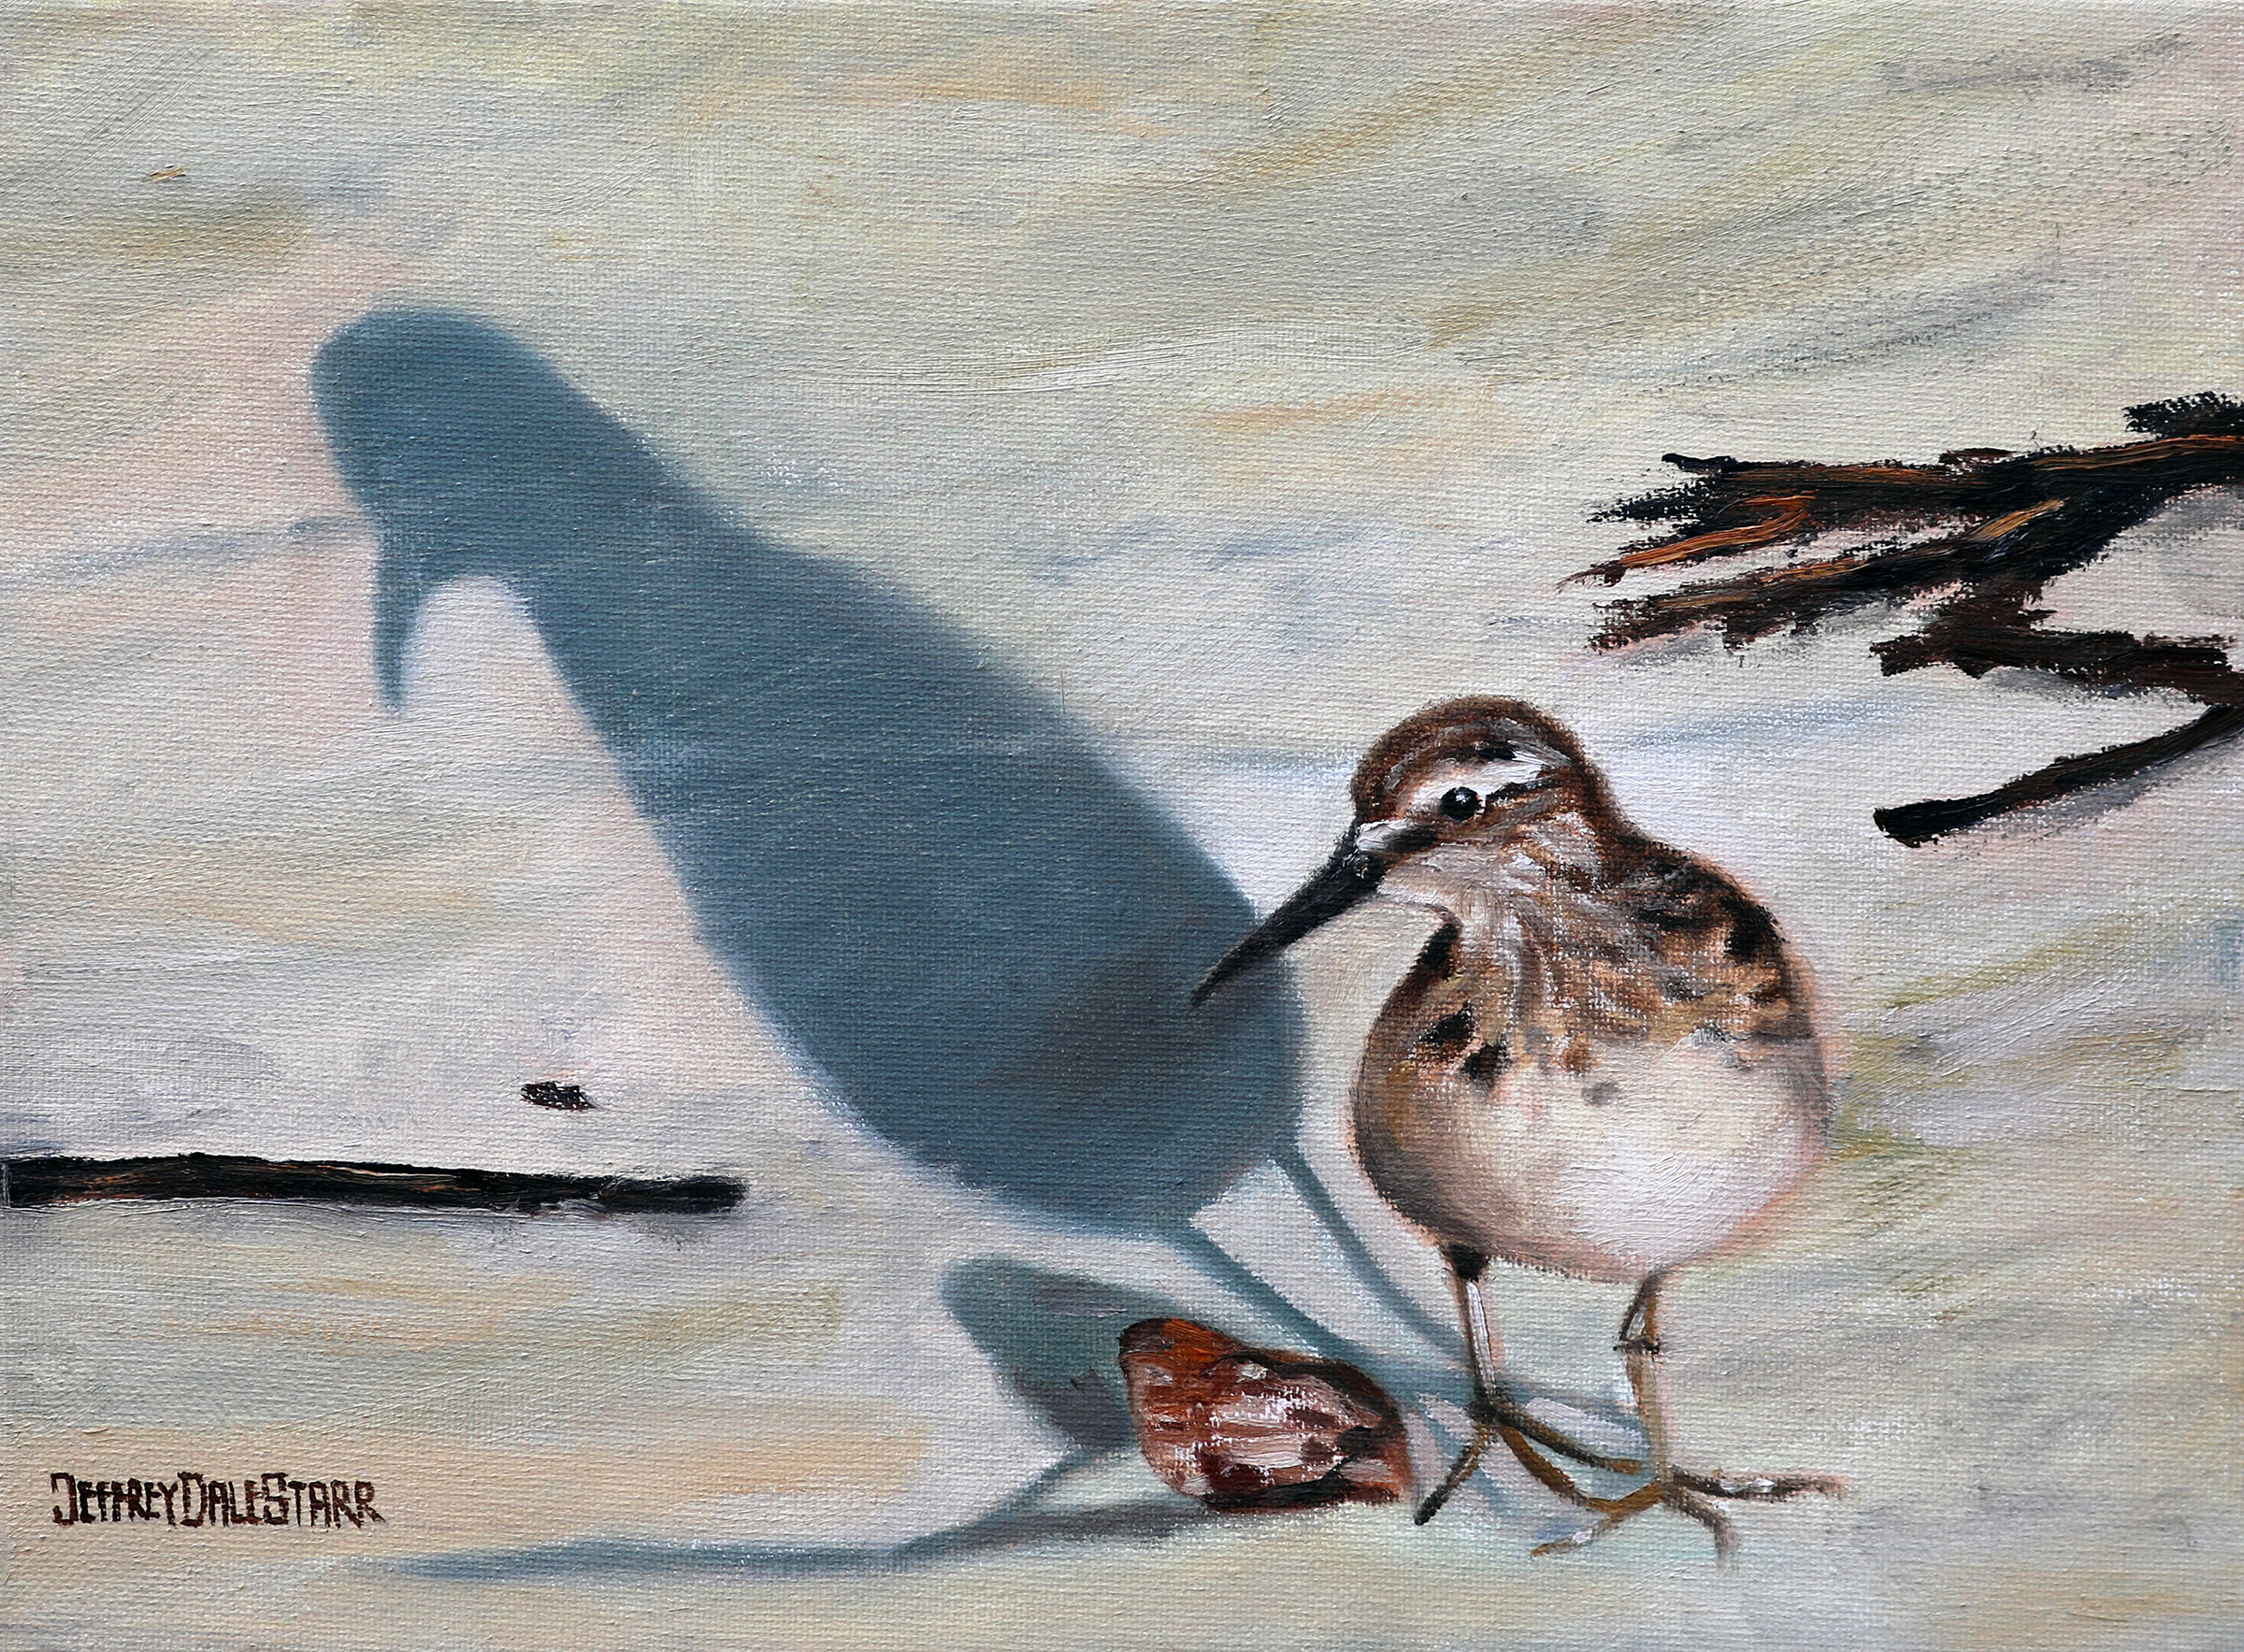 Sandpiper and Shell by Jeffrey Dale Starr